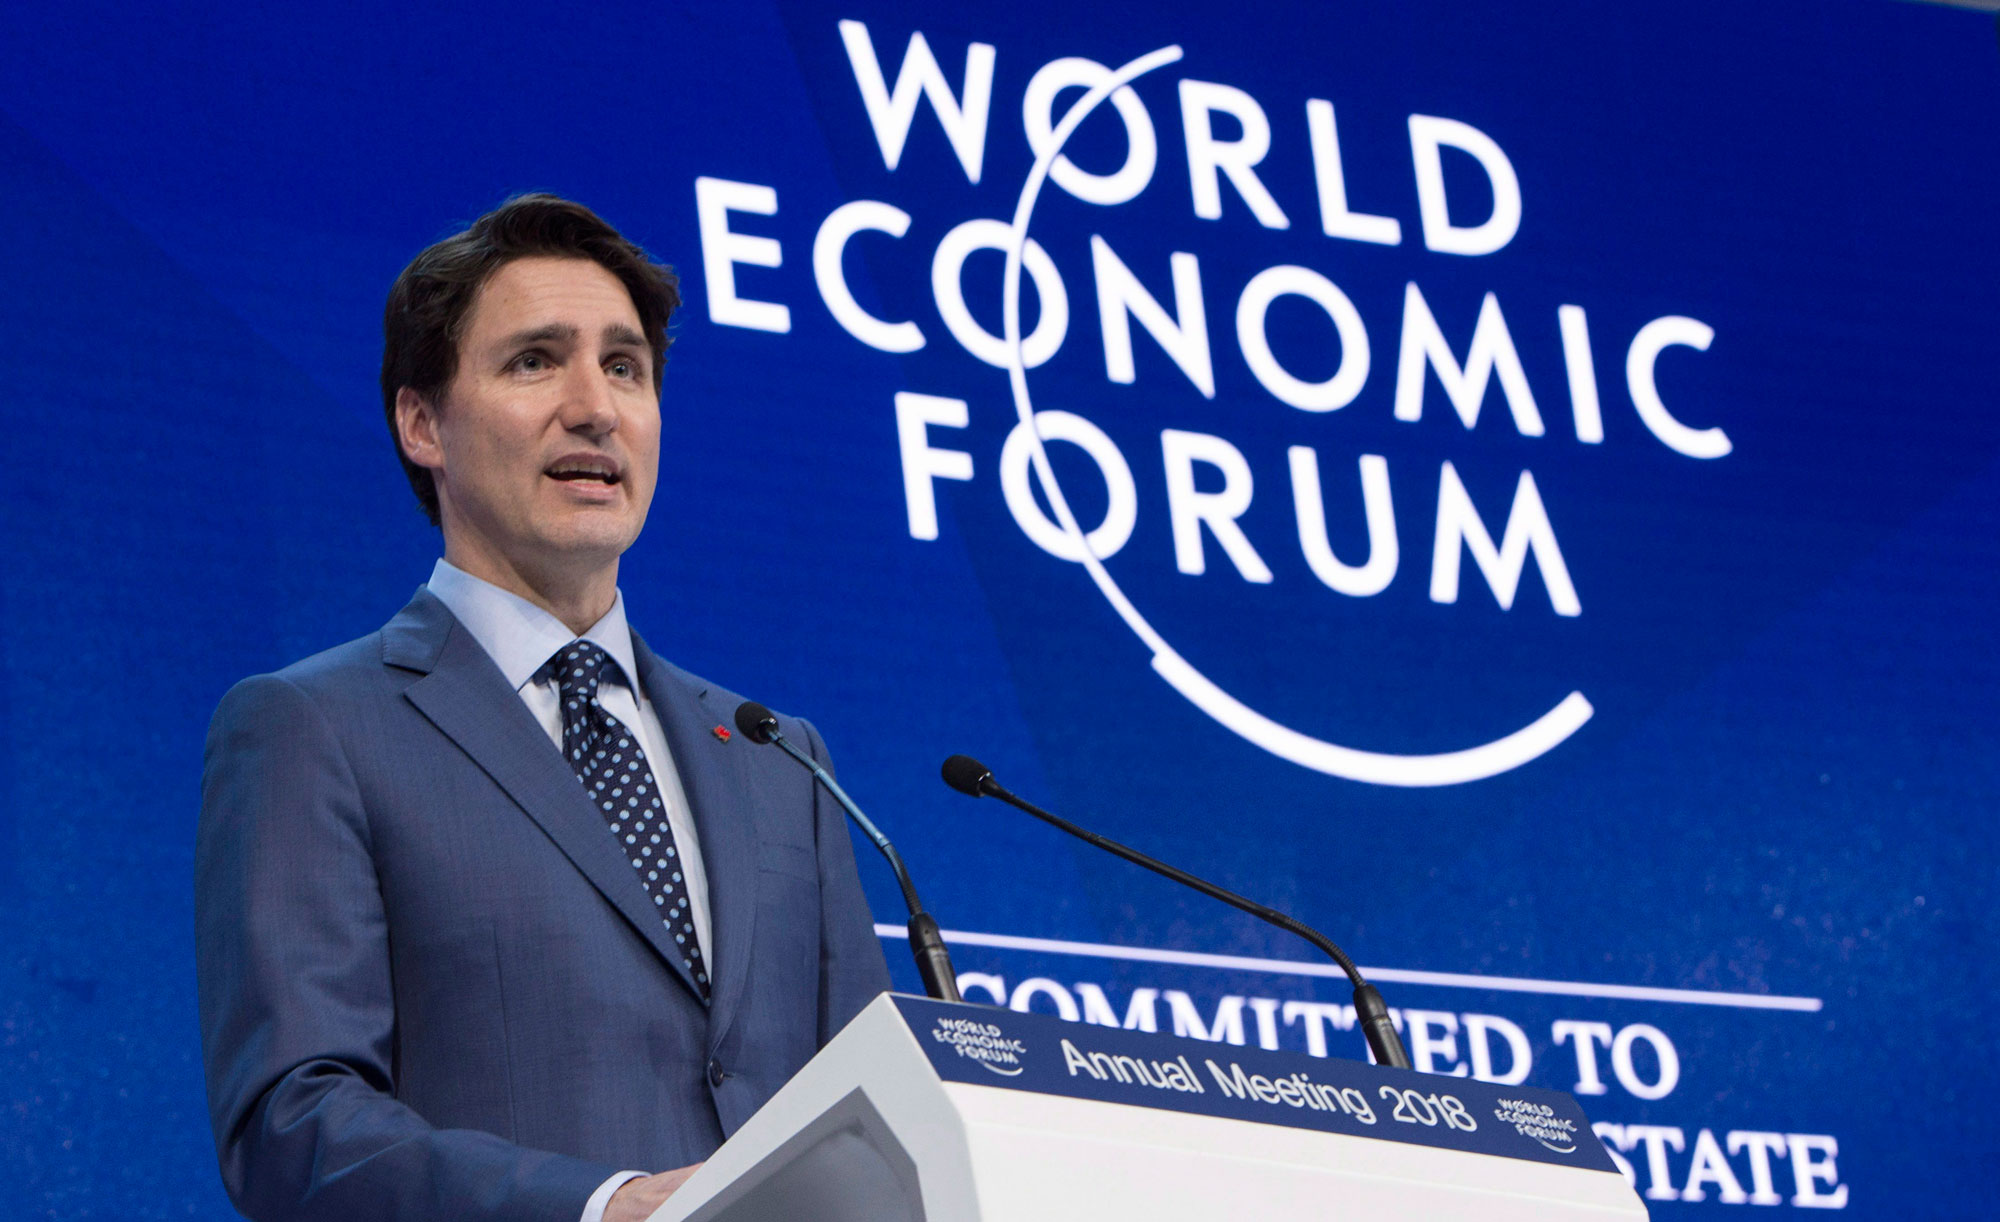 Trudeau and Netanyahu hold unannounced meeting at World Economic Forum